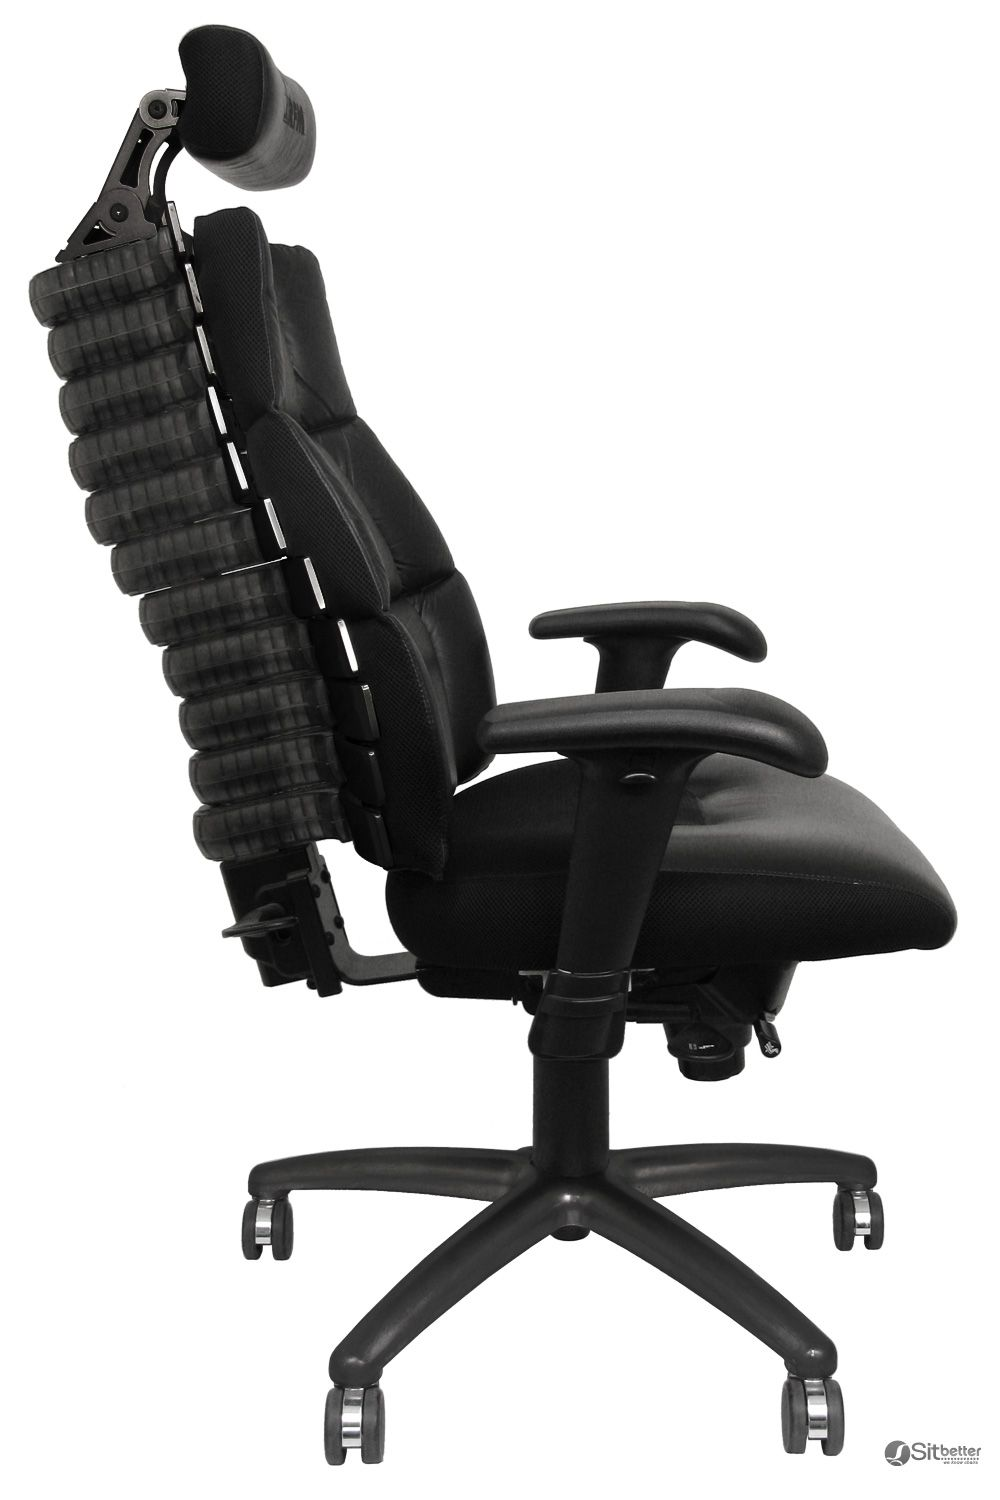 the 22111 verte chairrfm is the ultimate executive office